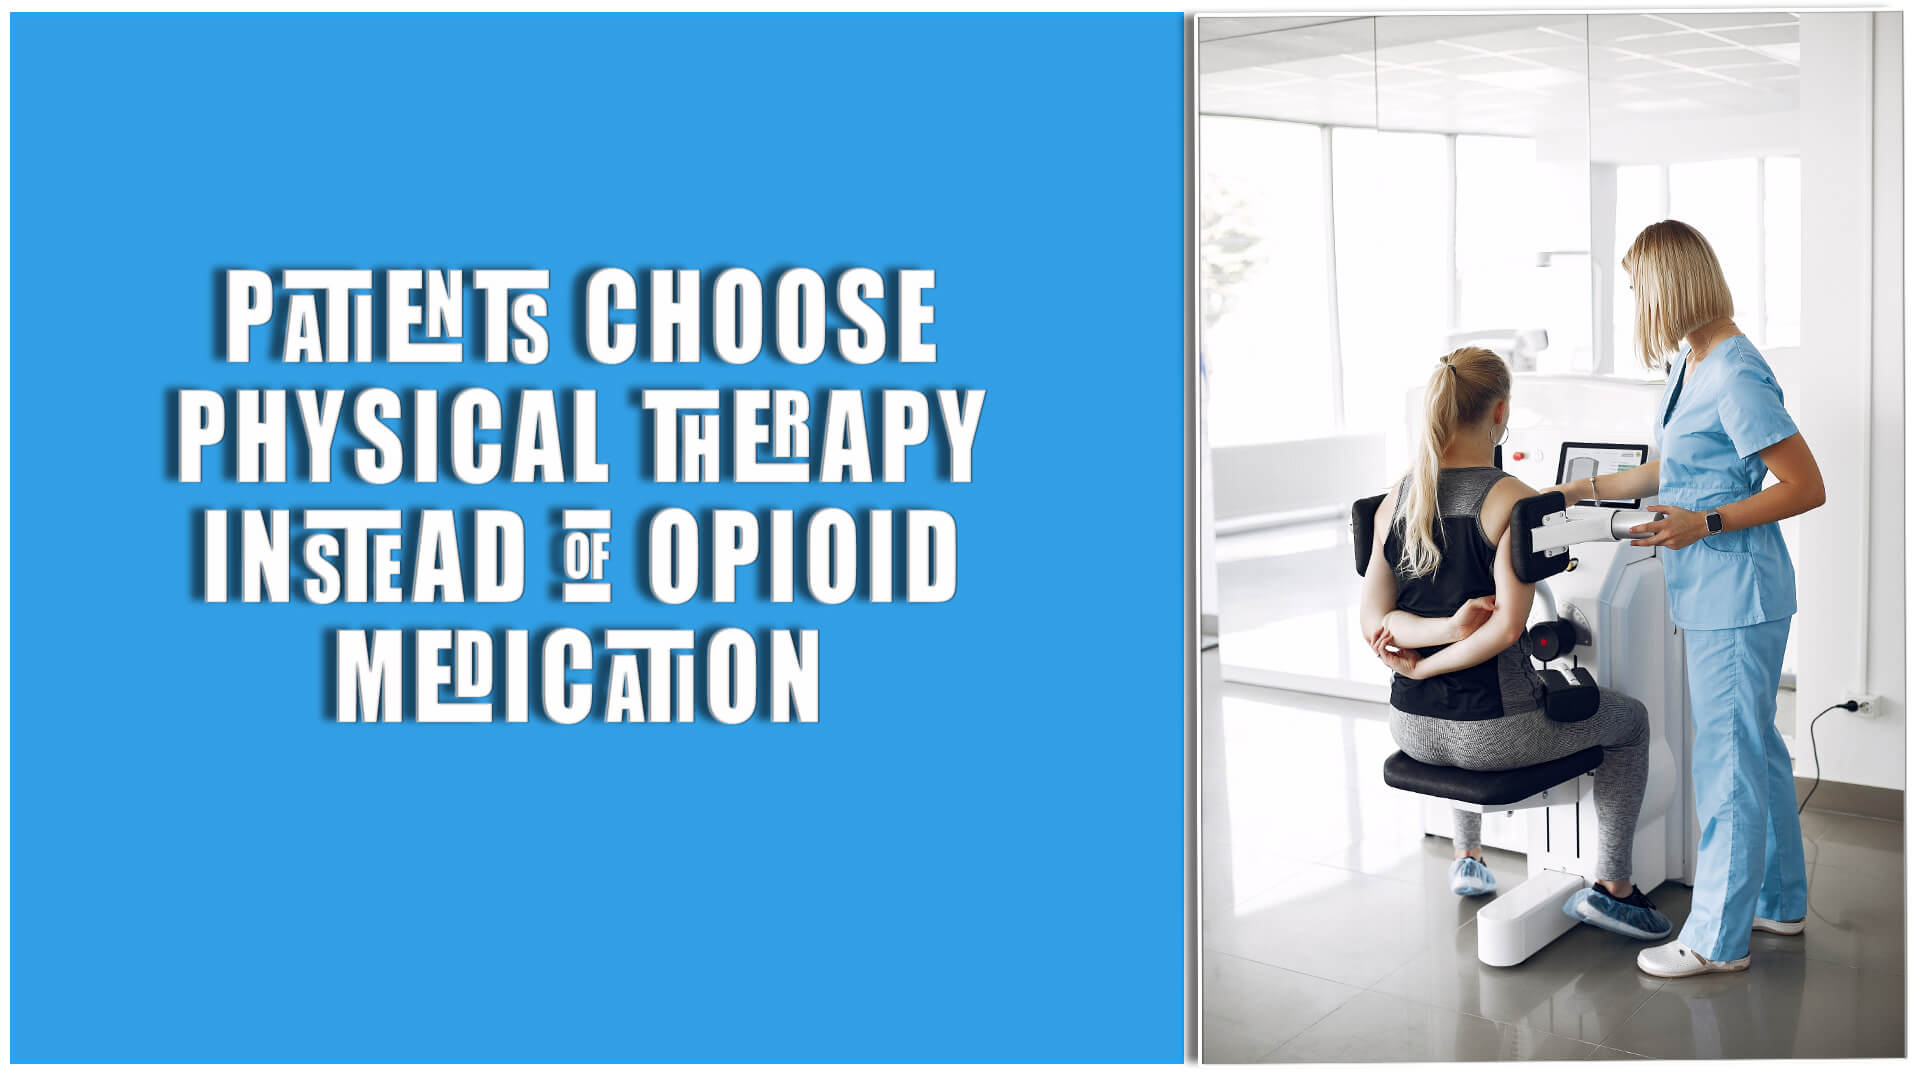 Patients Choose Physical Therapy Instead of Opioid Medication